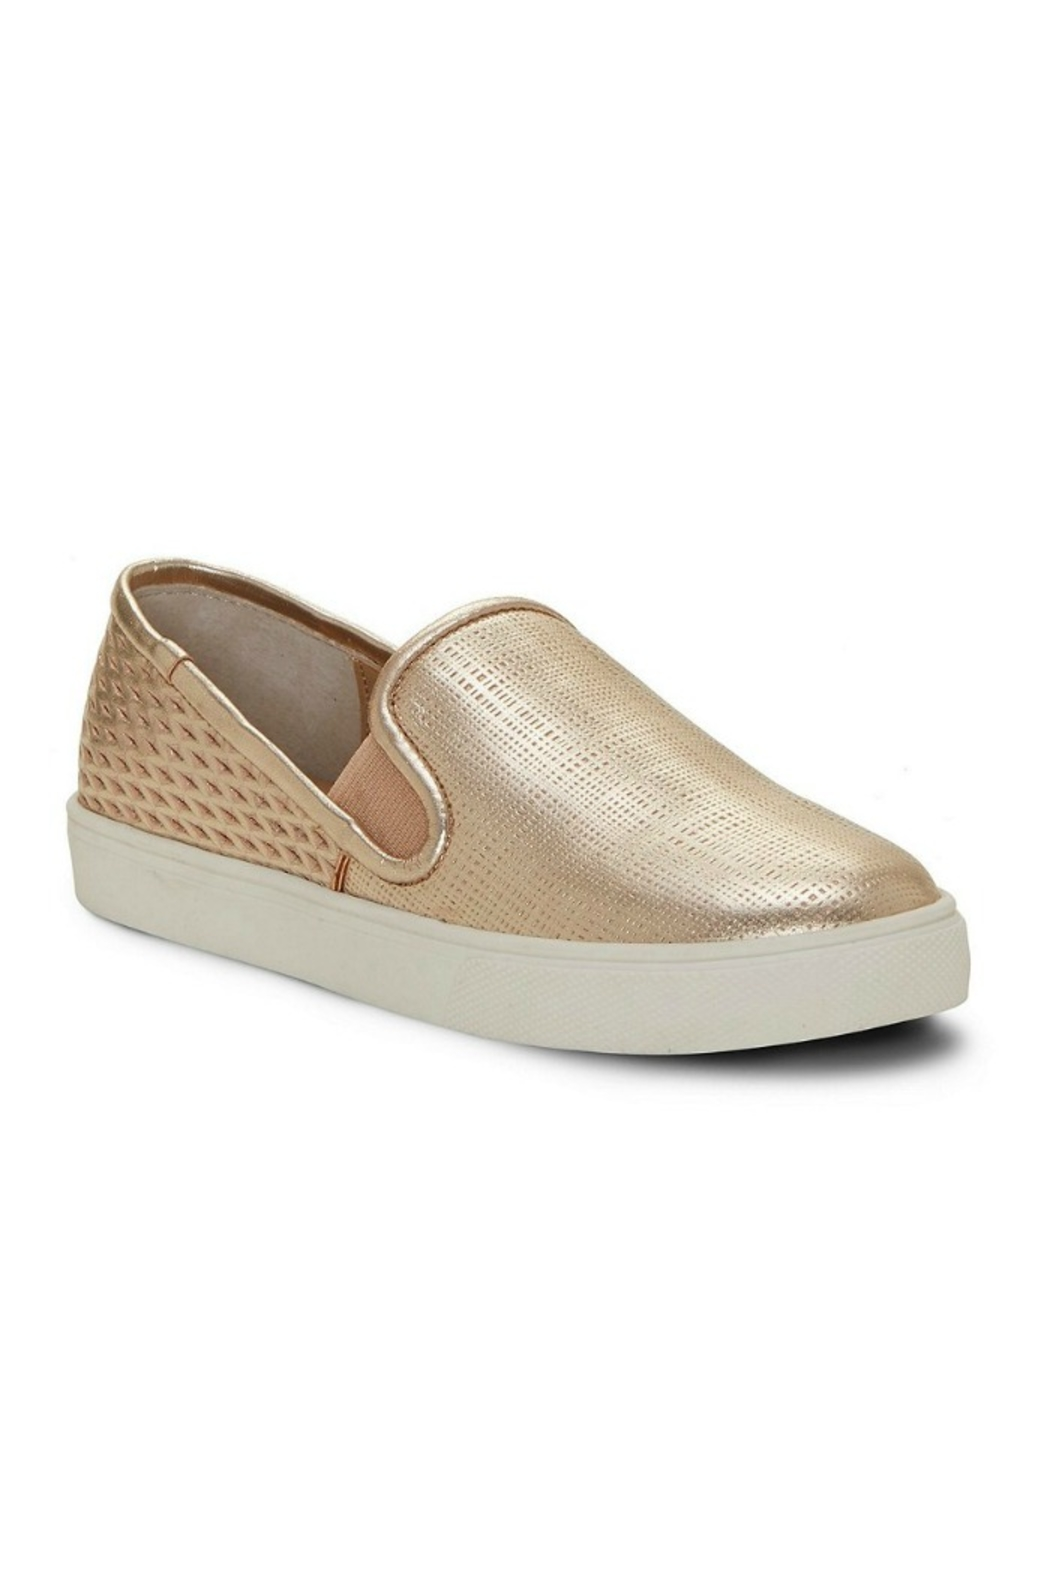 Vince Camuto Bestina Vincent Camuto - Front Cropped Image